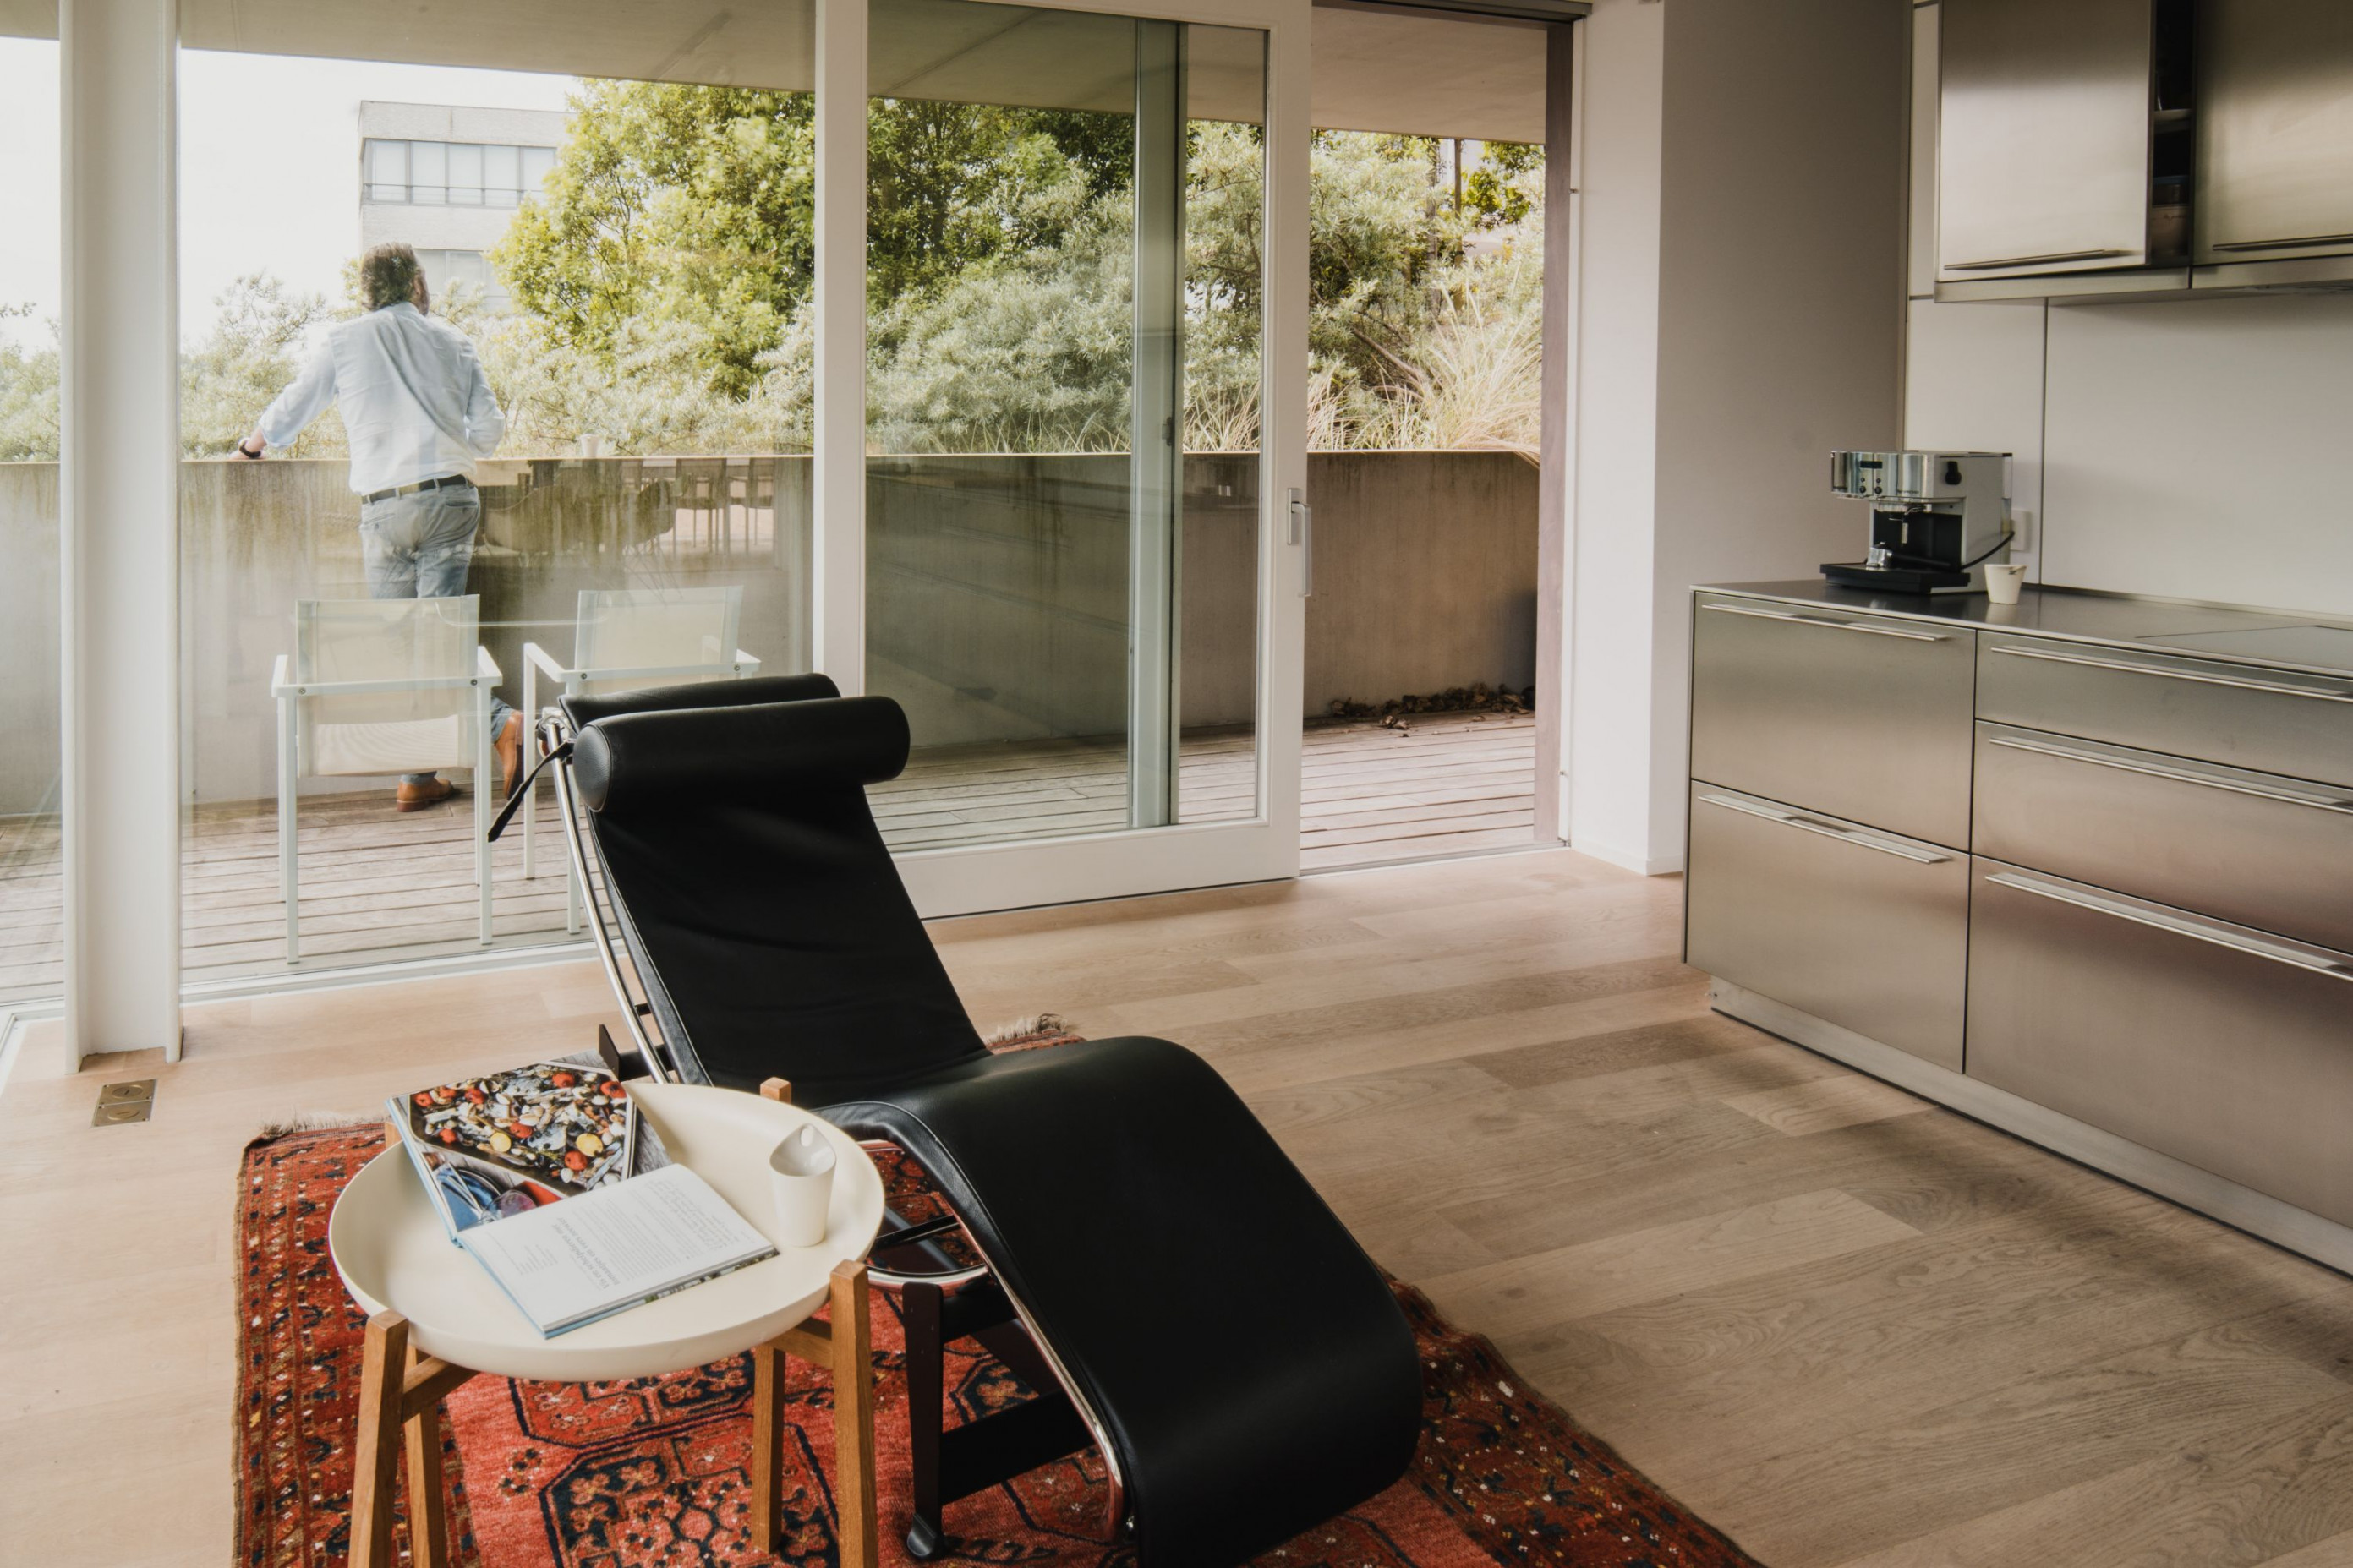 Duinappartement - Arne Jacobsen - Pic by Dayo Clinckspoor1